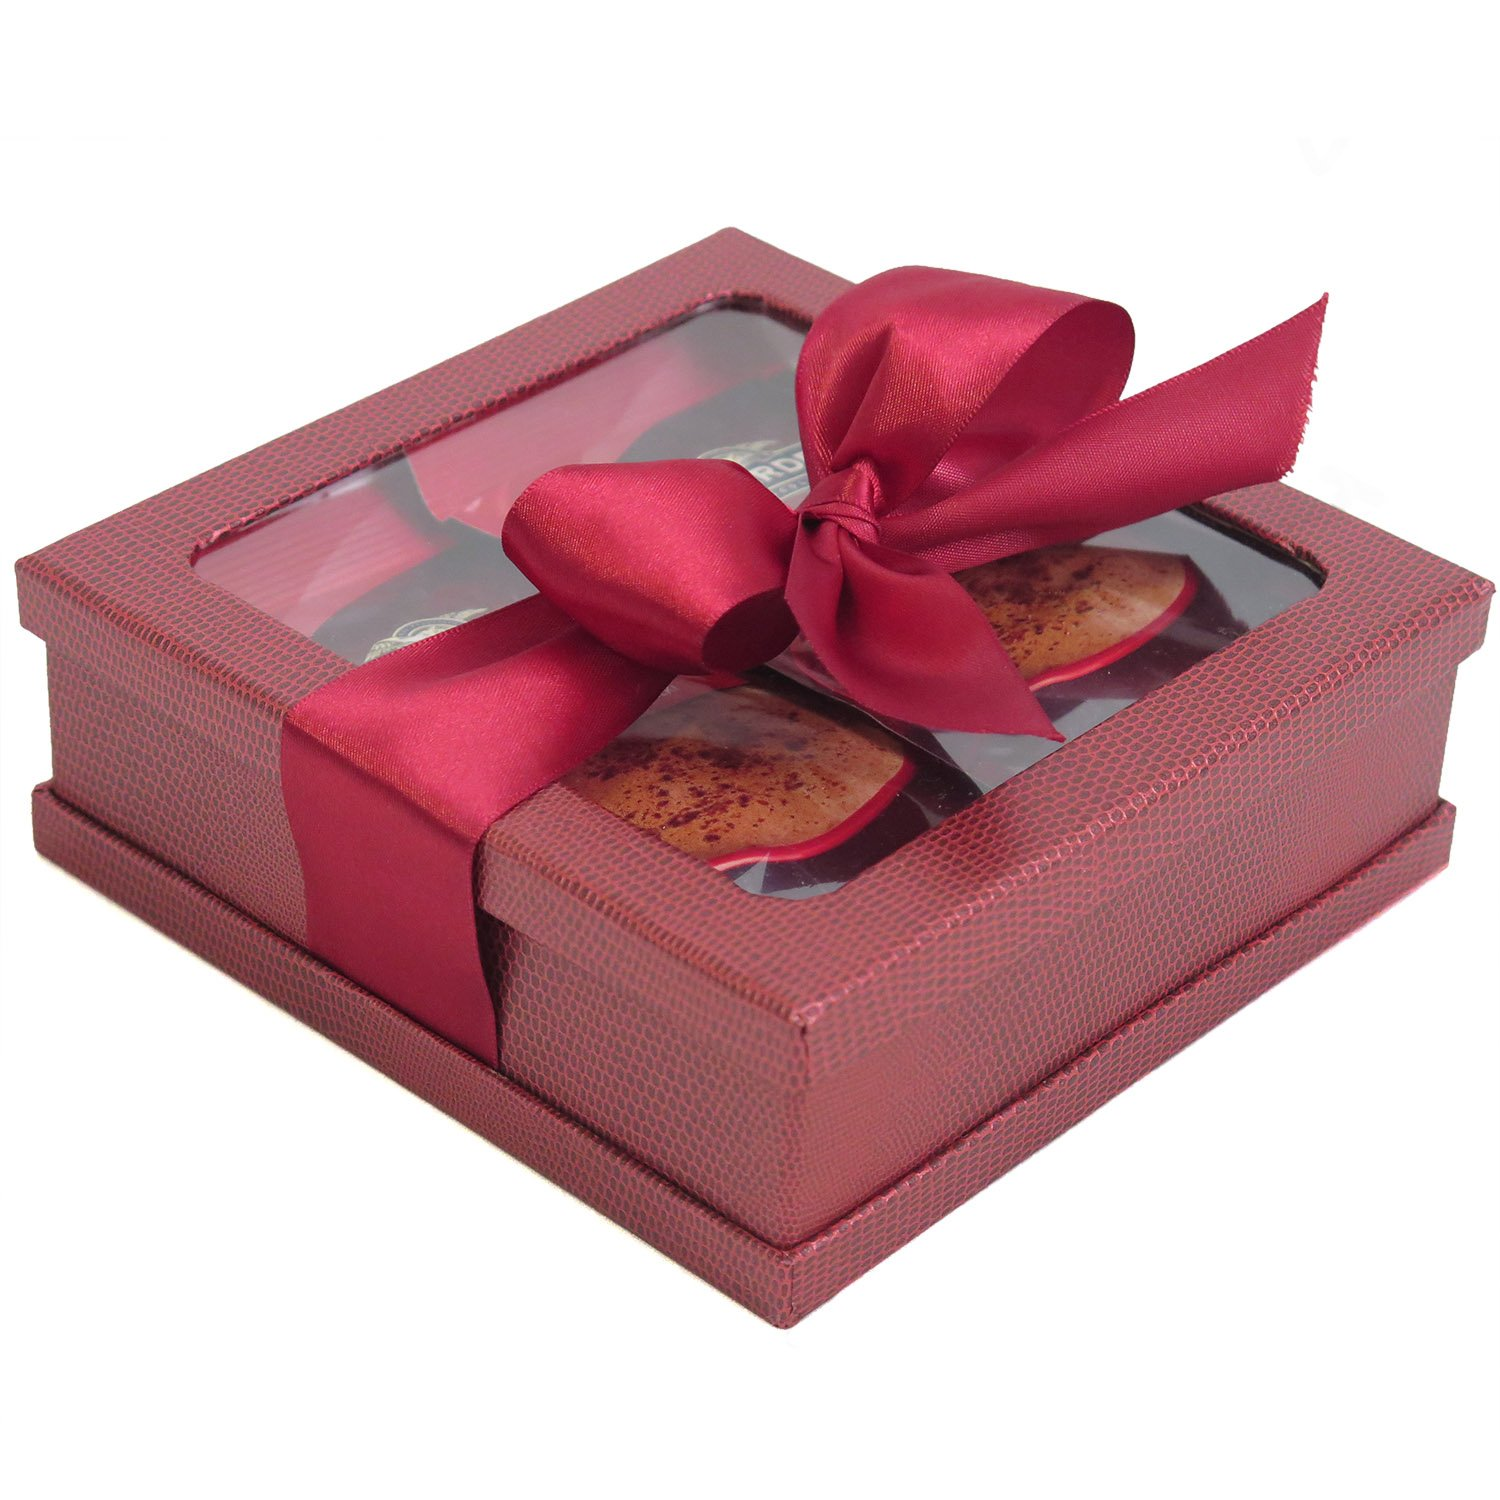 Ghirardelli Hot Cocoa Gift - Hot Cocoa Gift Set - Coffee Gifts - Hot Chocolate Gift Set - Best Gift for Coworkers, Friends, Boss Etc (Burgundy)